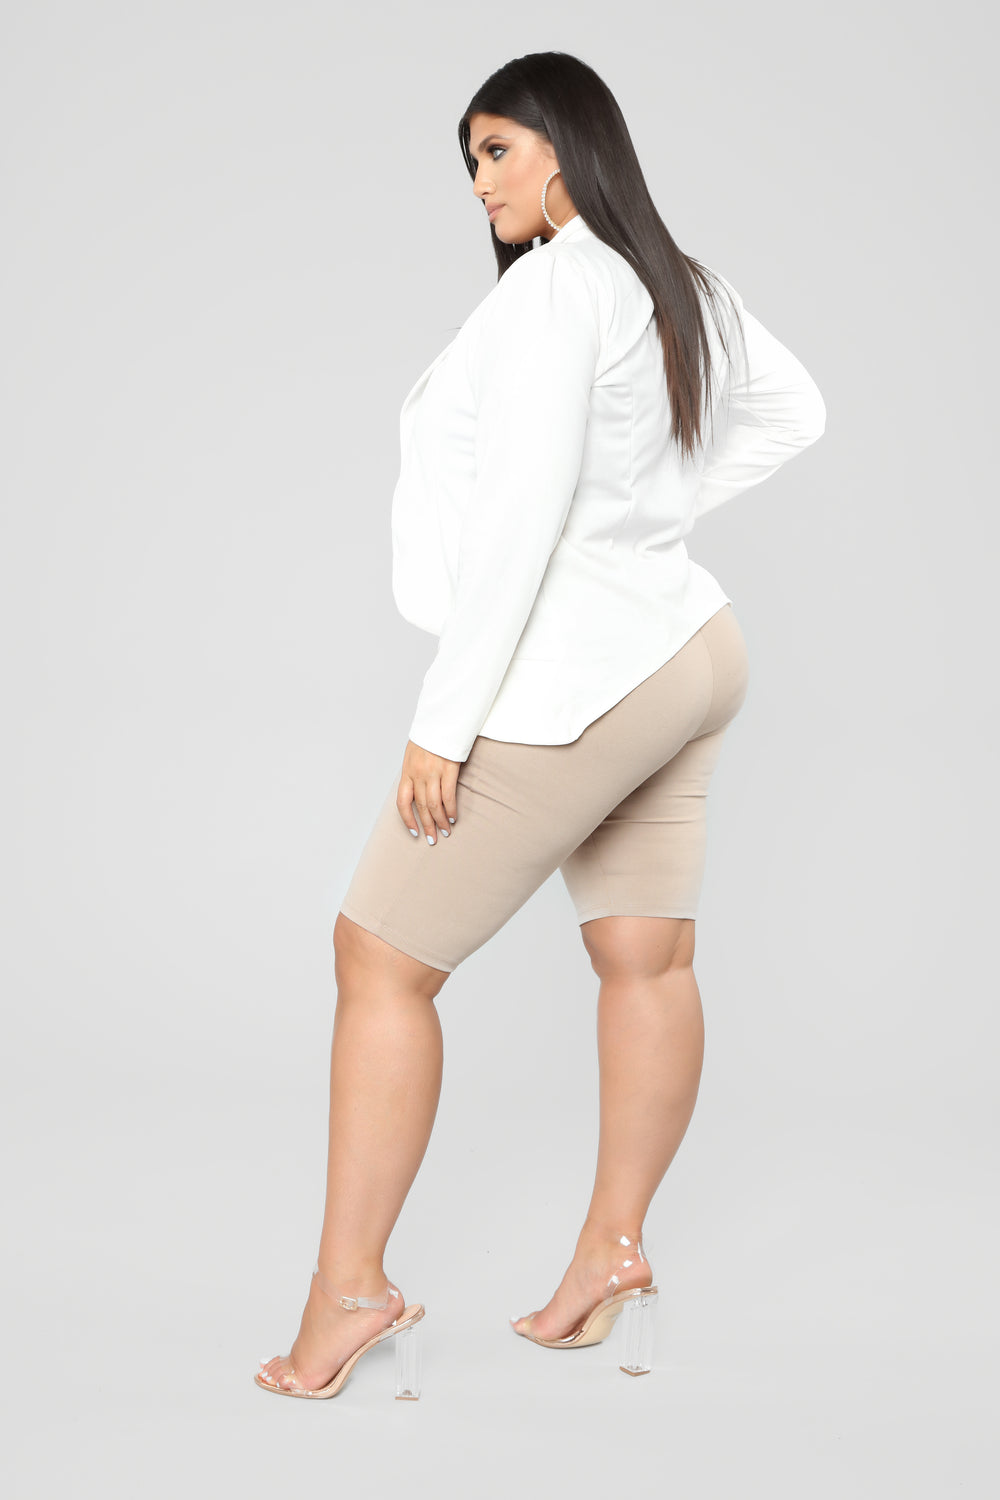 None Of Yo Business Draped Blazer - Ivory